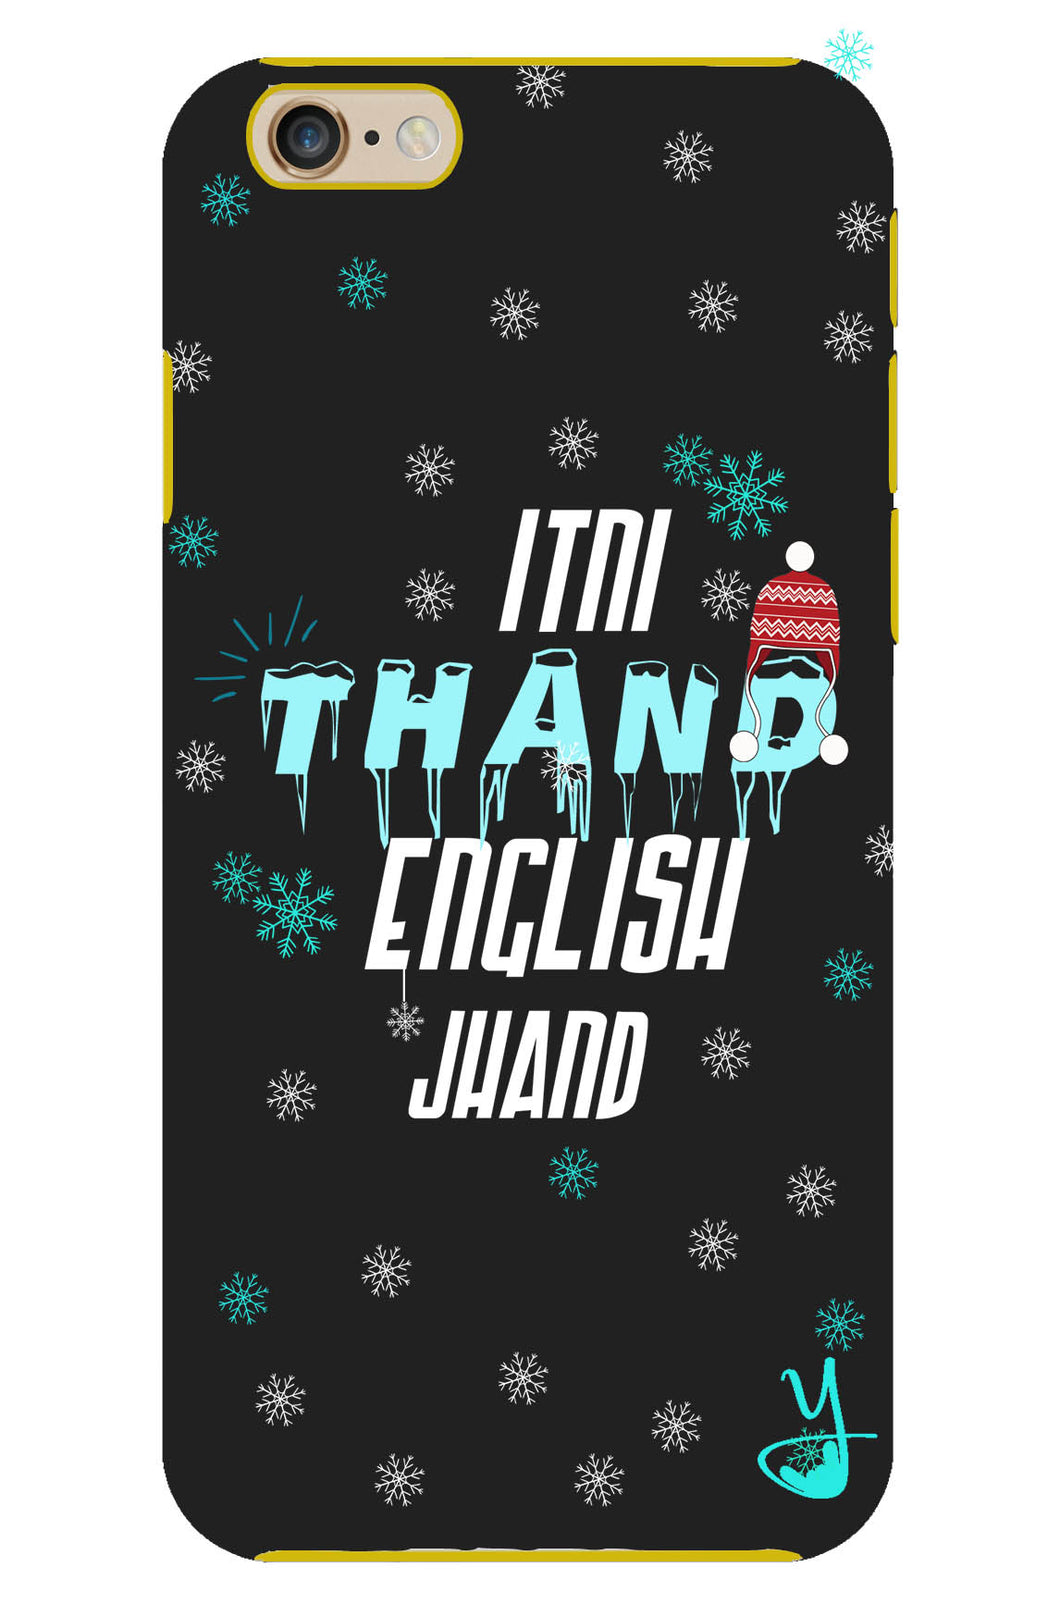 Itni Thand edition for I Phone 6/6s